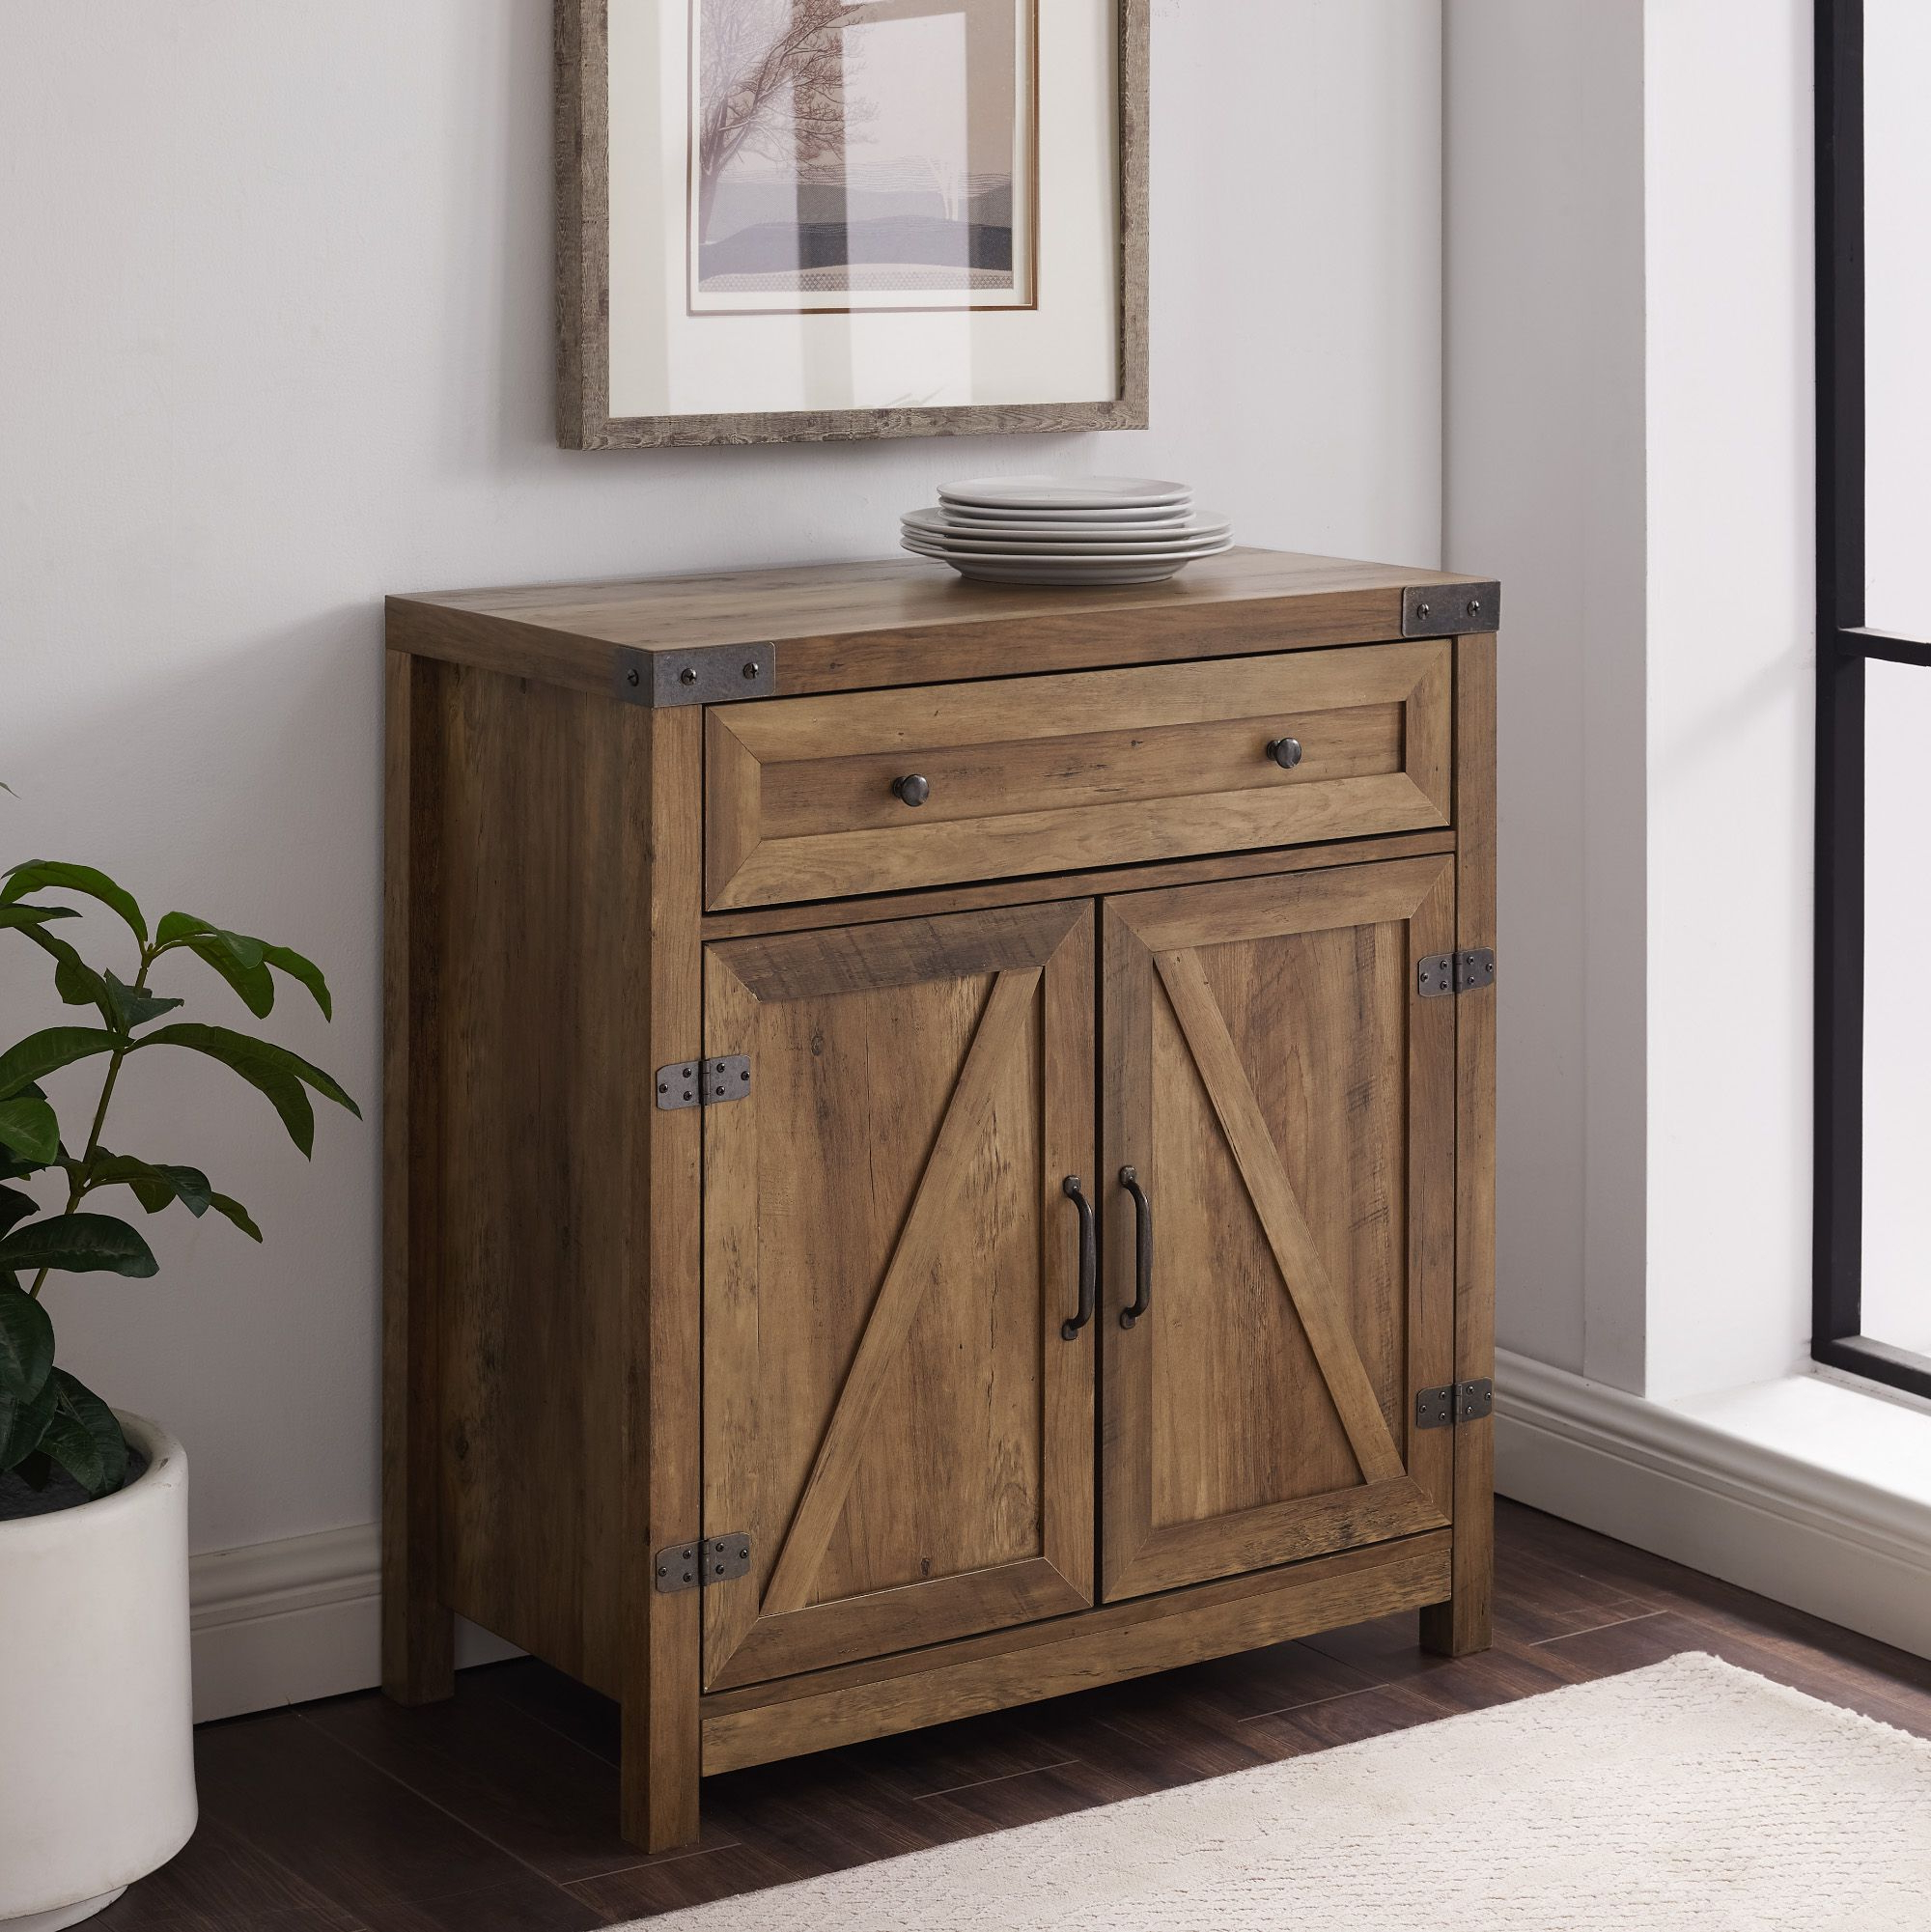 Manor Park Farmhouse Barn Door Accent Cabinet Reclaimed Within Woven Paths Barn Door Tv Stands In Multiple Finishes (View 17 of 20)